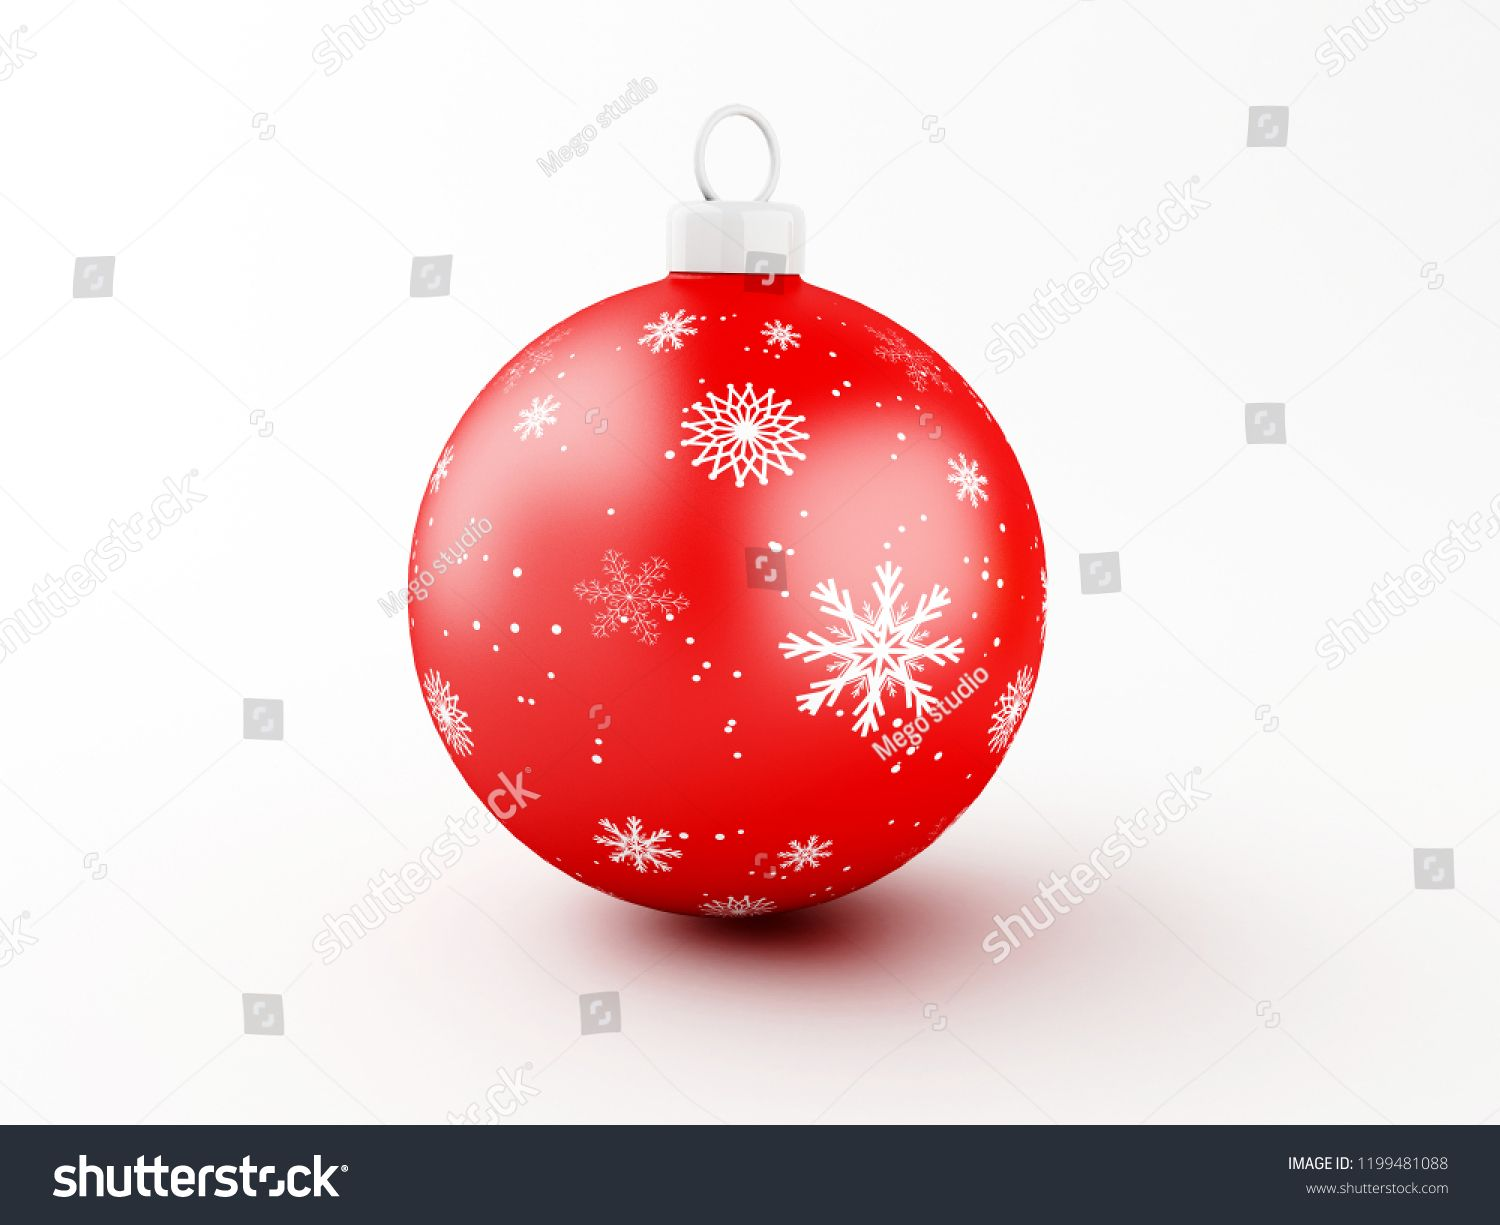 3d Illustration Red Christmas Ball On White Background Traditional Ornament Happy Winter Holidays And Merry Traditional Ornaments Happy Winter Red Christmas